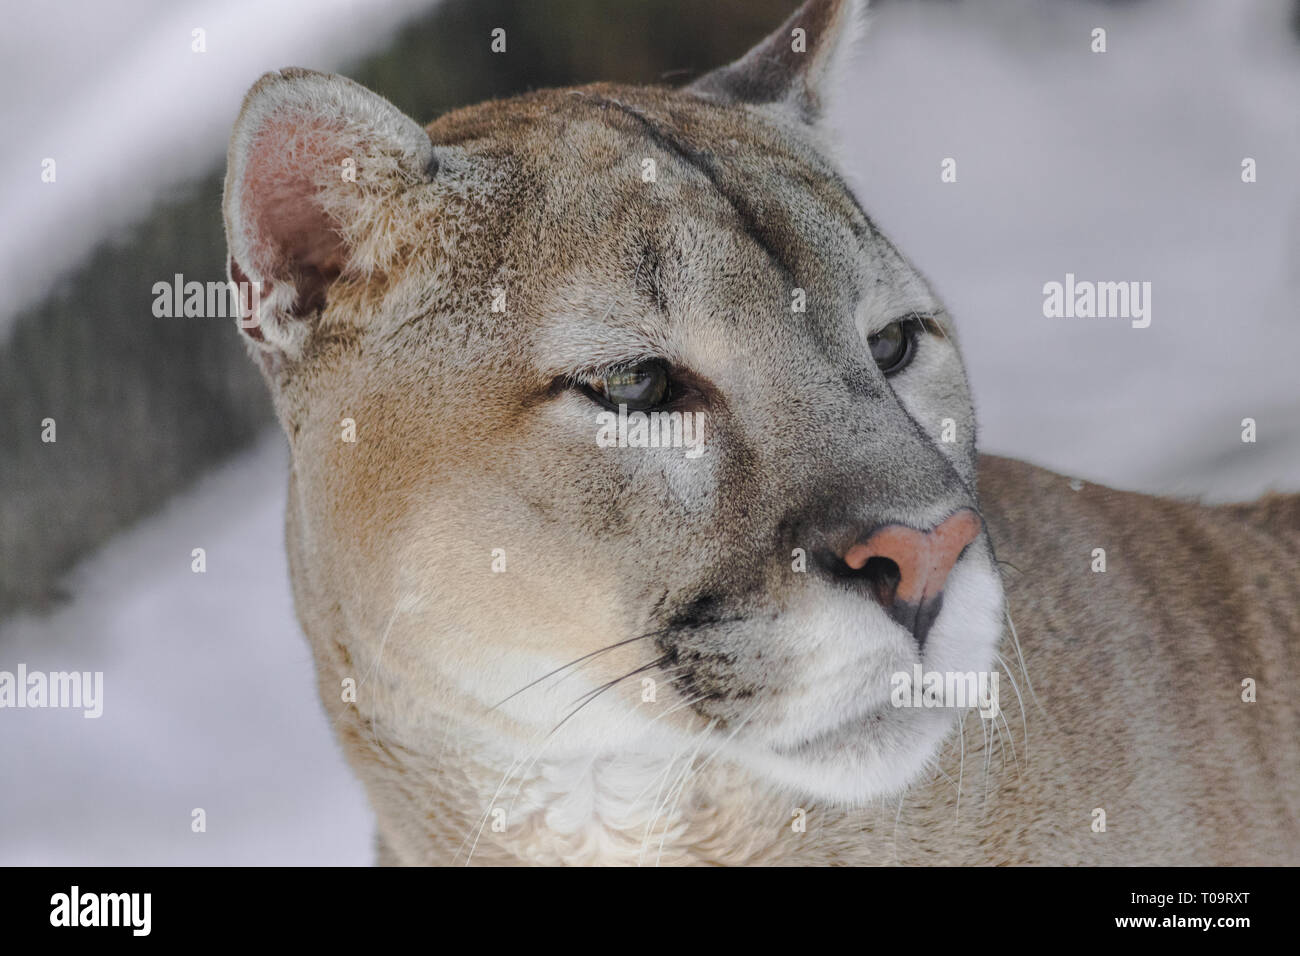 Cougar (Puma concolor), head portrait, looking to the right, with snow background - Stock Image